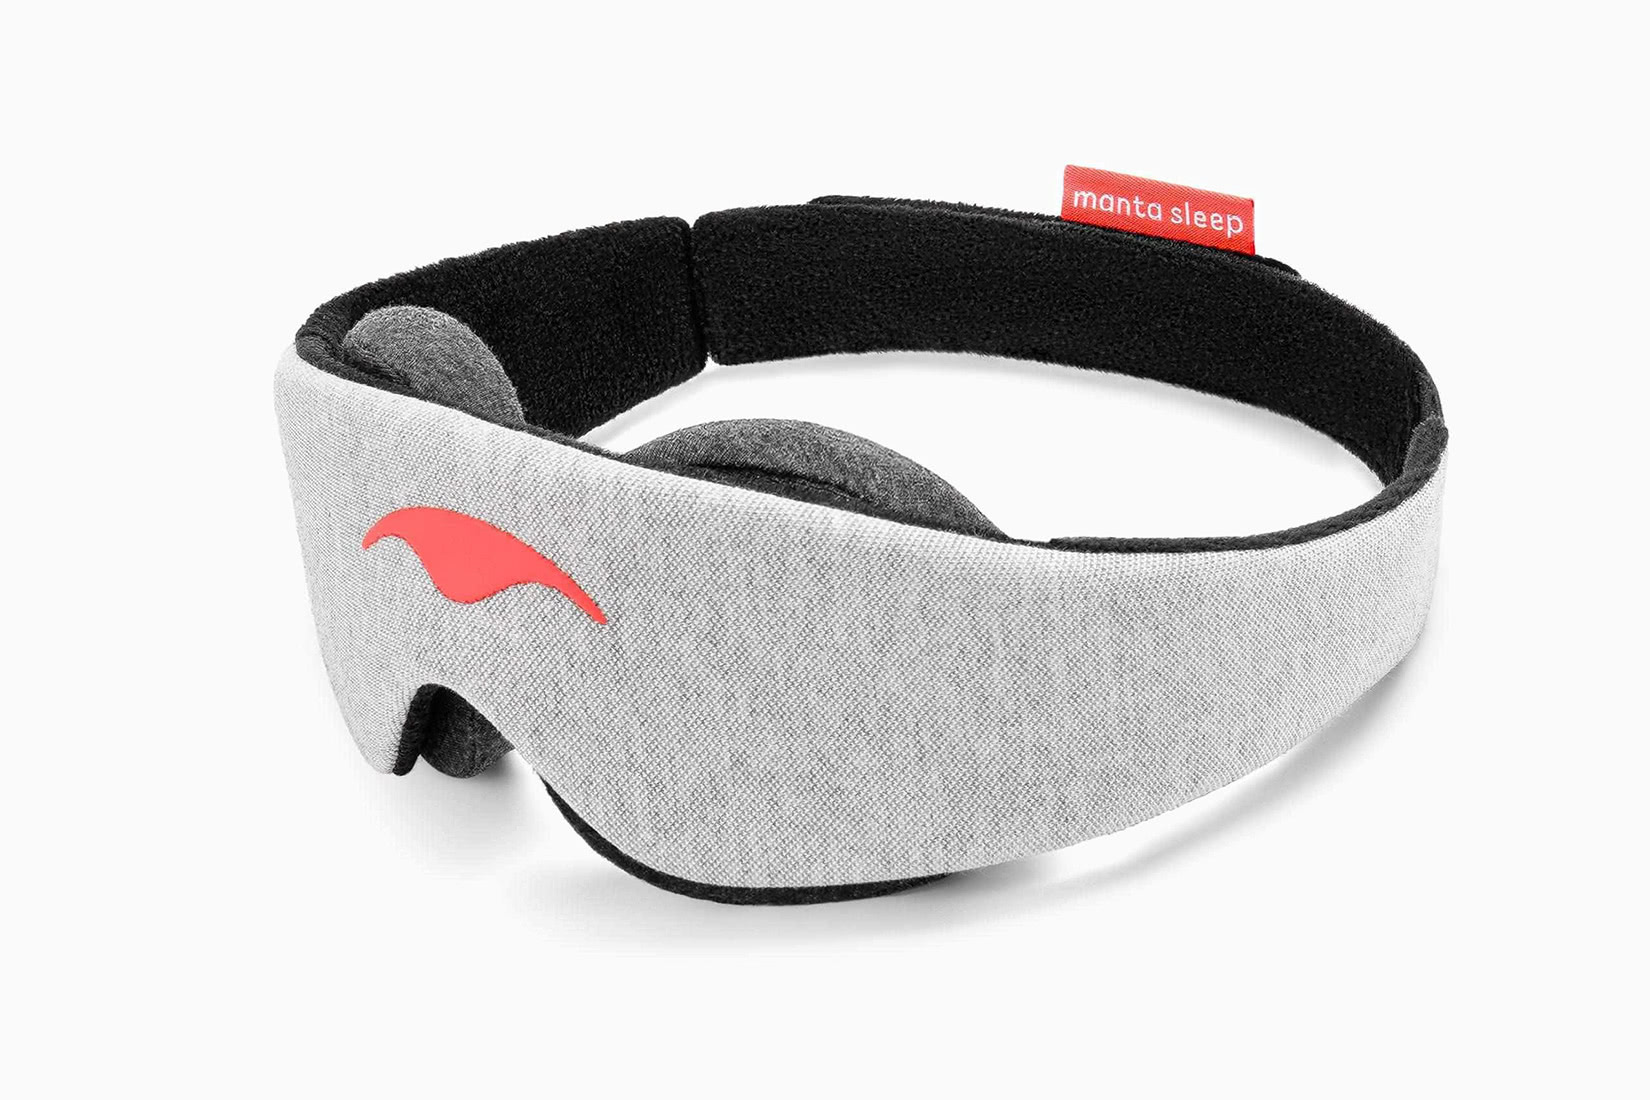 best sleep mask manta - Luxe Digital